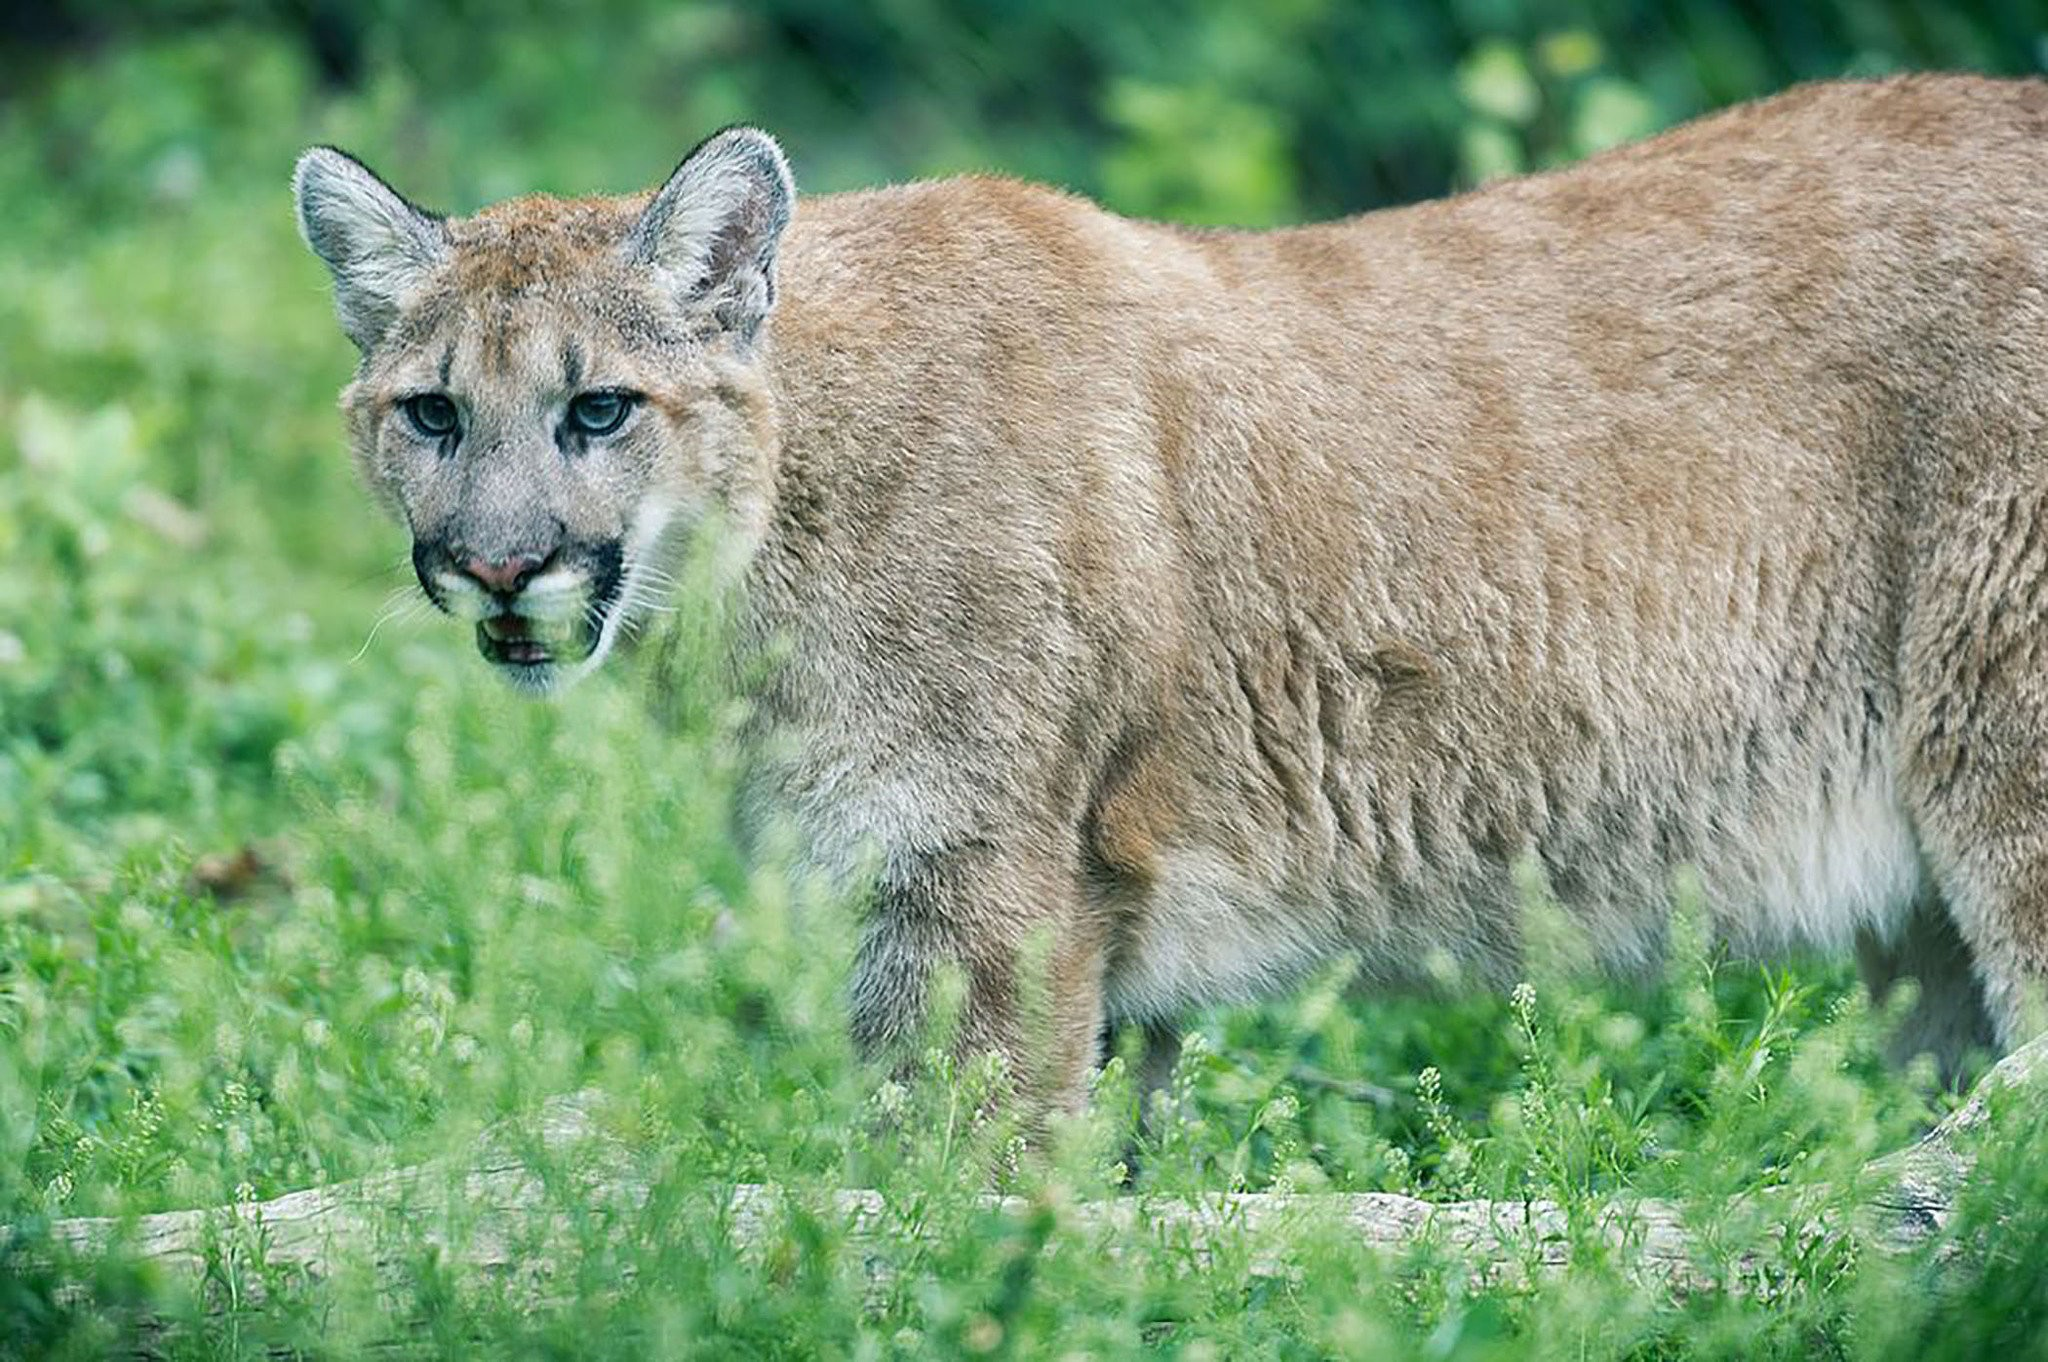 Eastern mountain lion officially declared extinct - pennlive.com